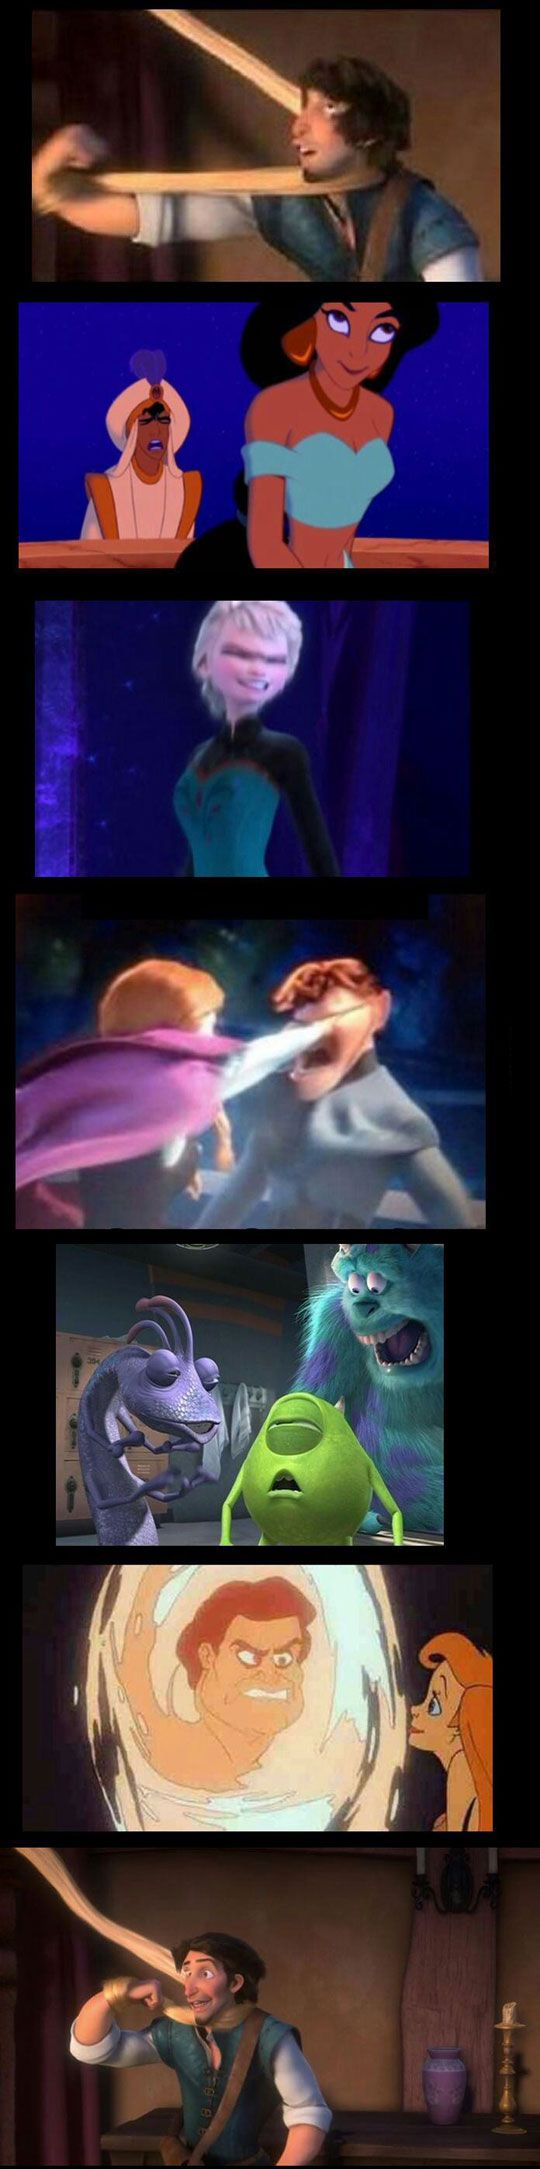 Never Pause A Disney Movie #disneymovies